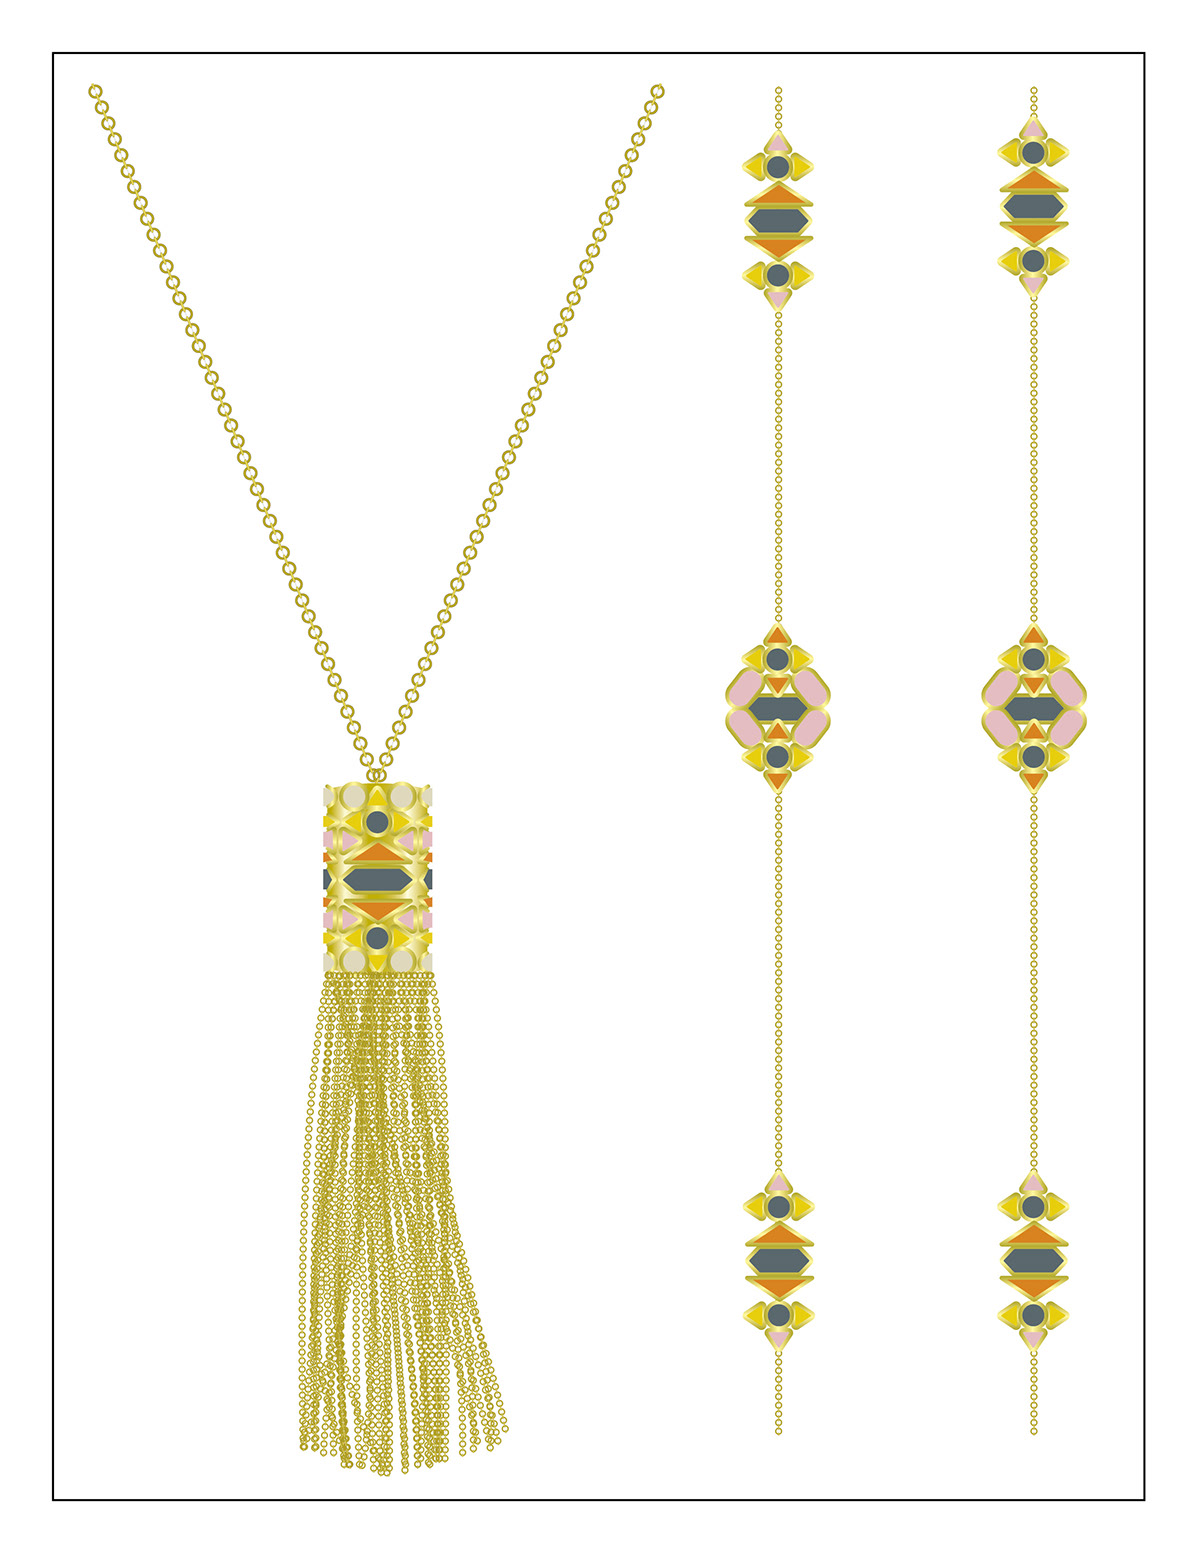 Illustrator Necklace jewelry line sheets illustrated jewelry spec sheets Technical Drawings Fashion  fashion jewelry ILLUSTRATION